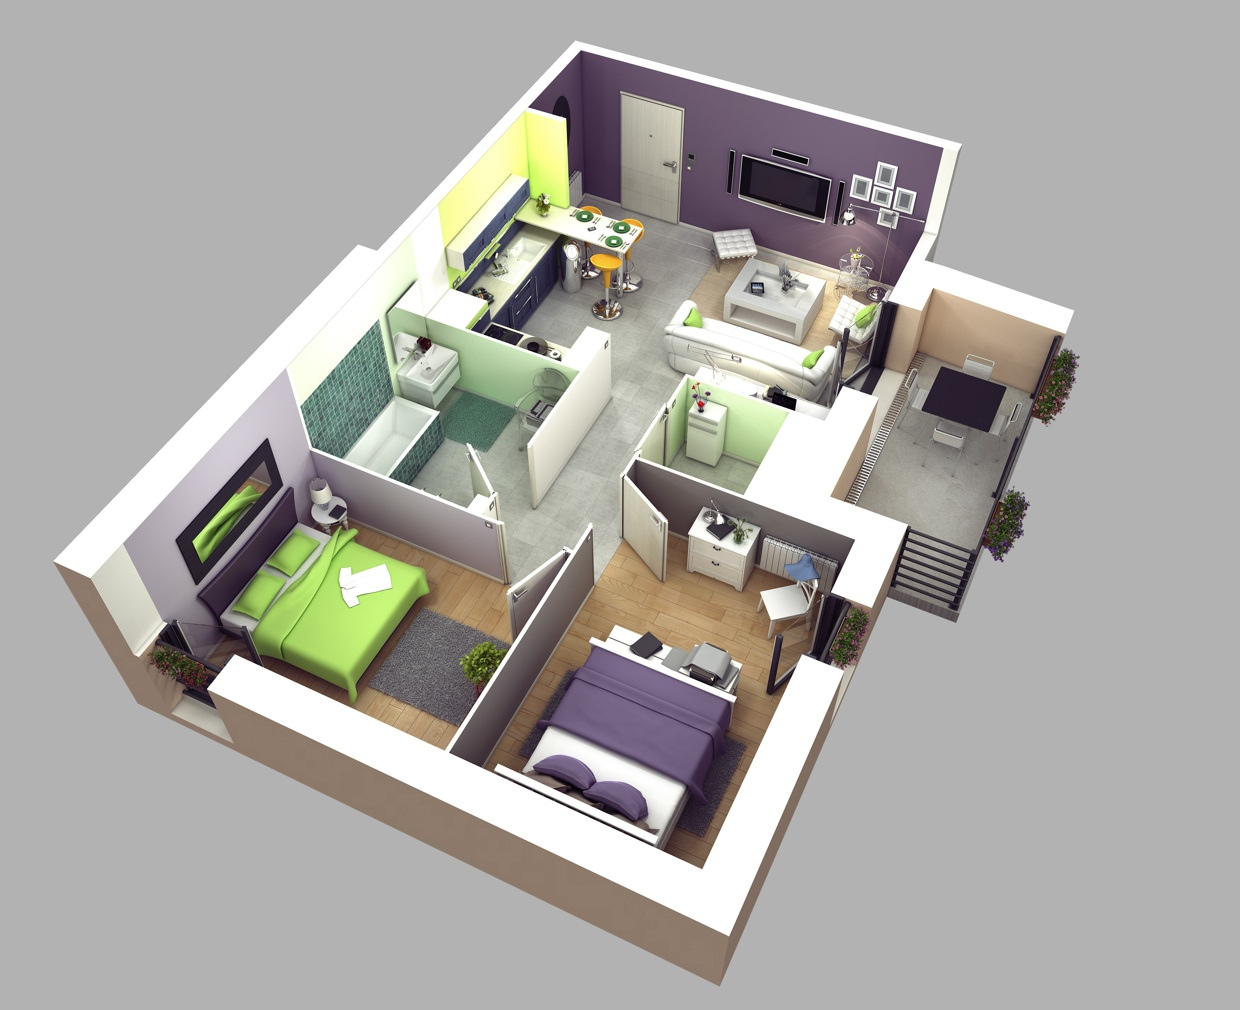 2 bedroom apartment house plans 2 bedroom house plans contemporary 2 bedroom house plans